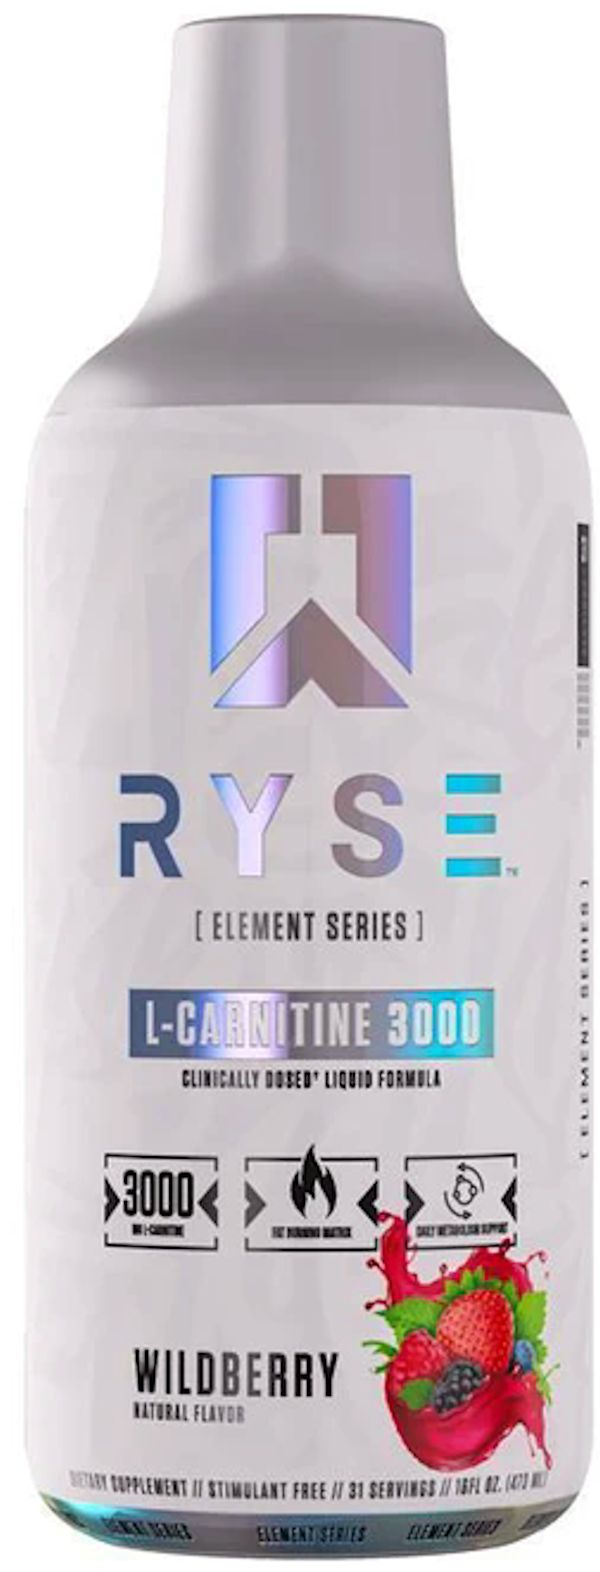 Ryse Supplements Liquid L-Carnitine 3000 31 servings